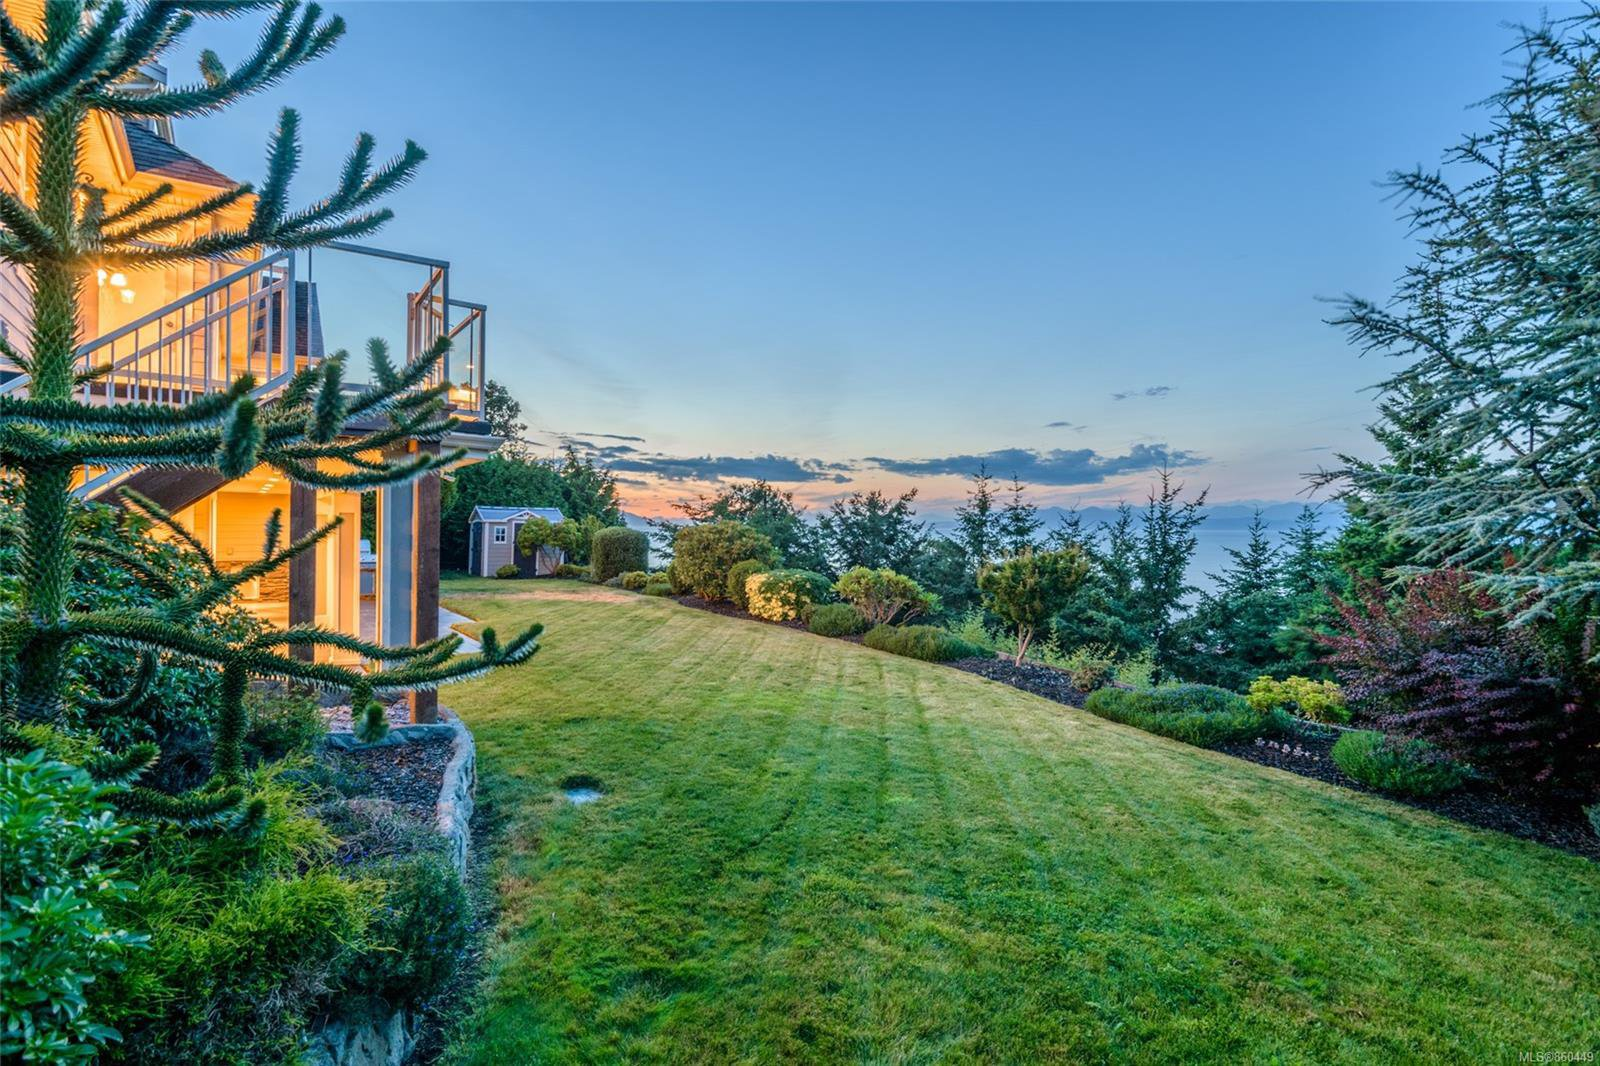 Photo 52: Photos: 5019 Hinrich View in : Na North Nanaimo House for sale (Nanaimo)  : MLS®# 860449